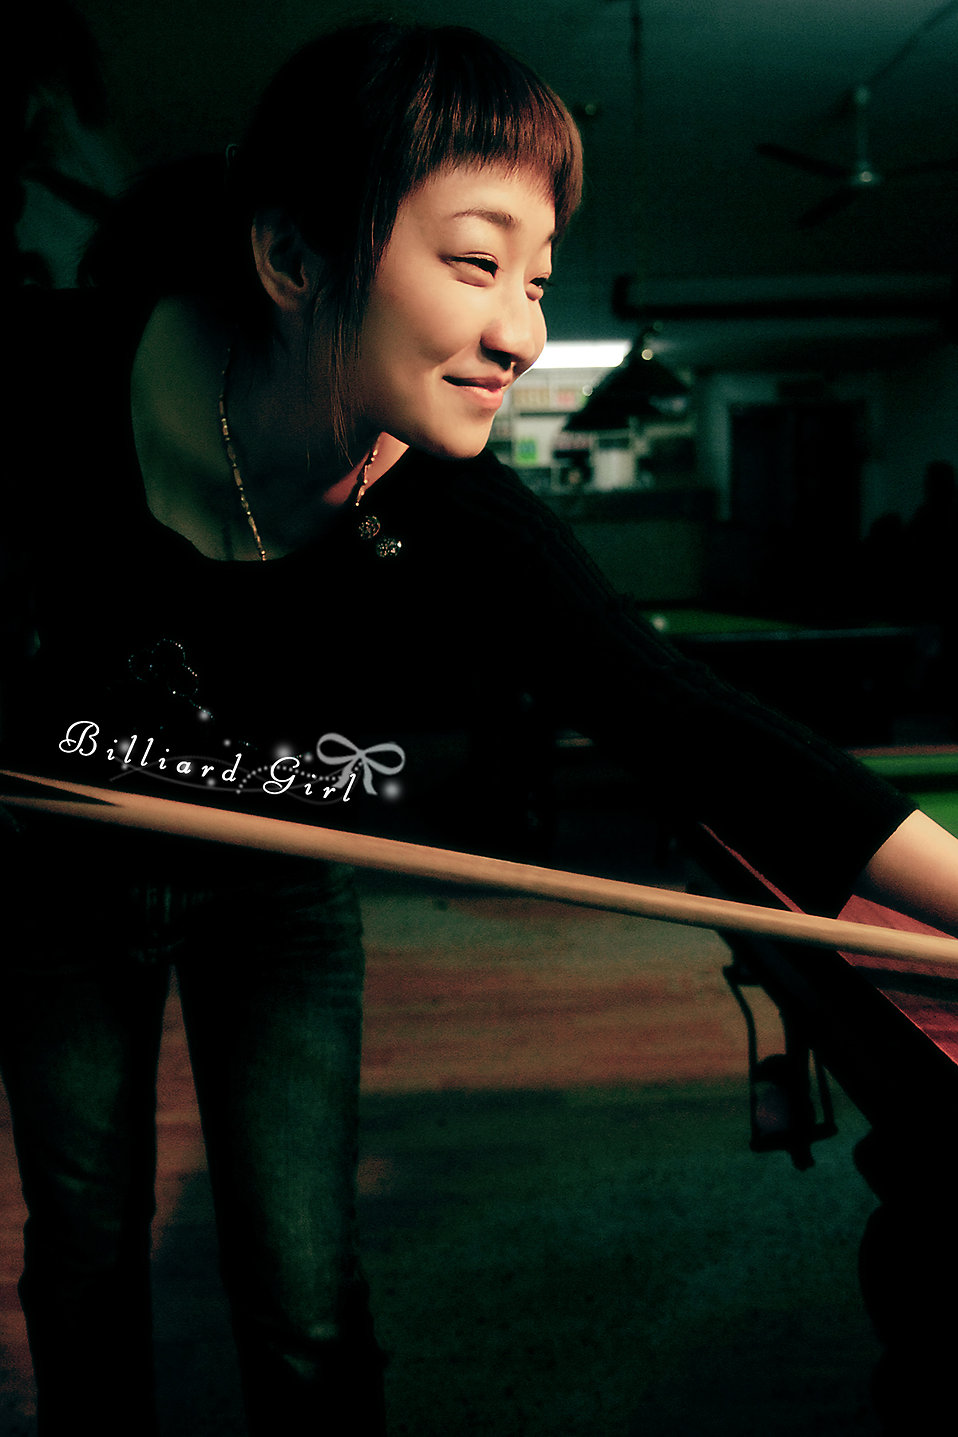 billiards girl